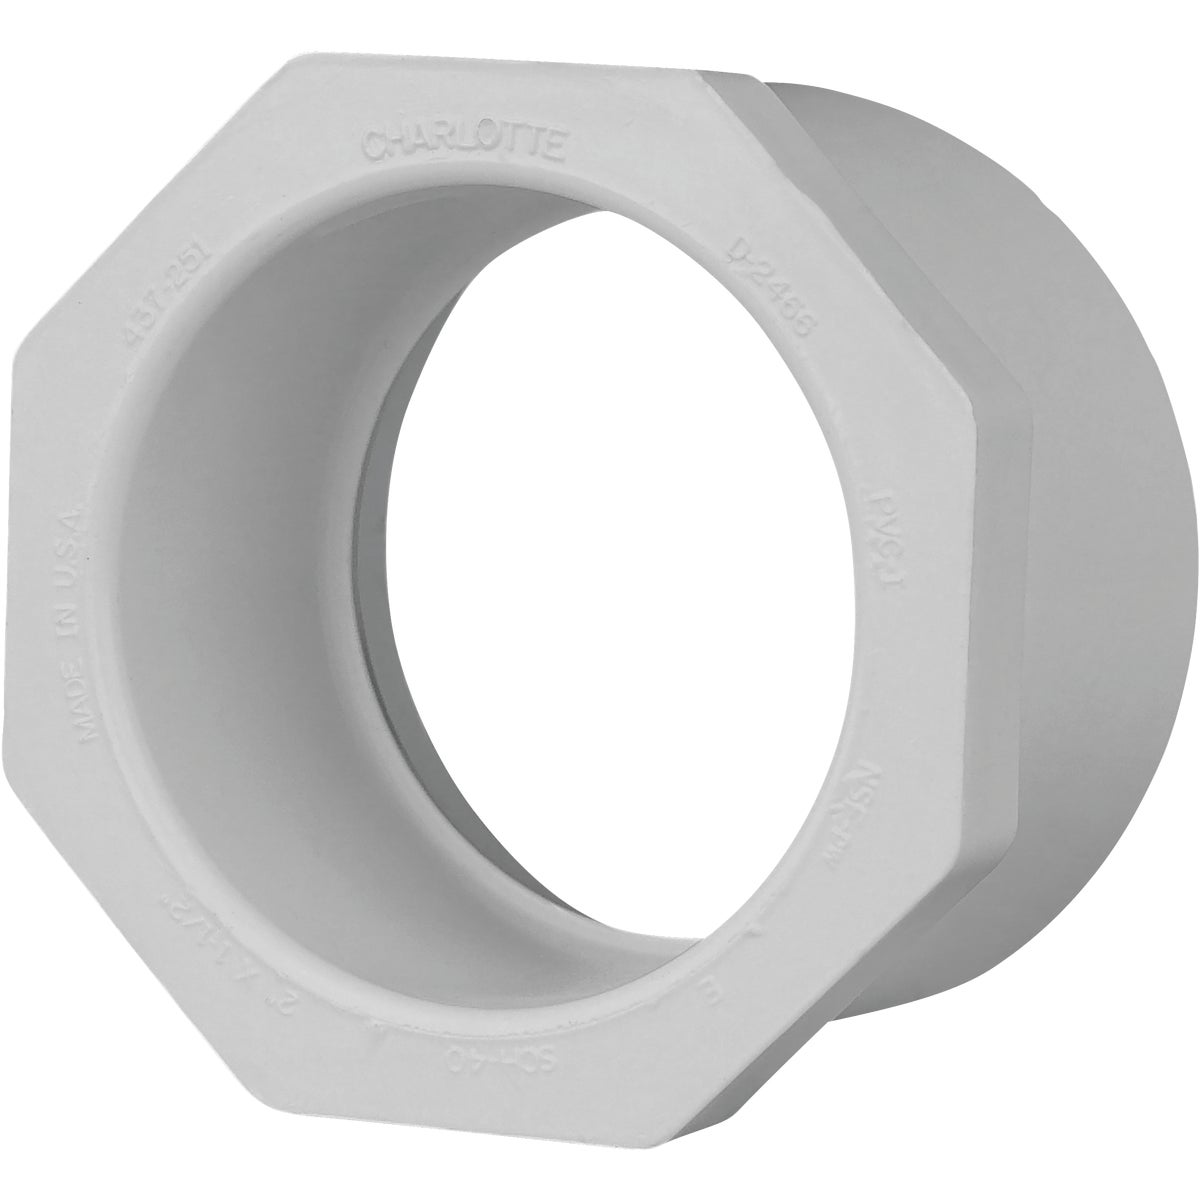 2X1-1/2 PVC SPXS BUSHING - 30221 by Genova Inc